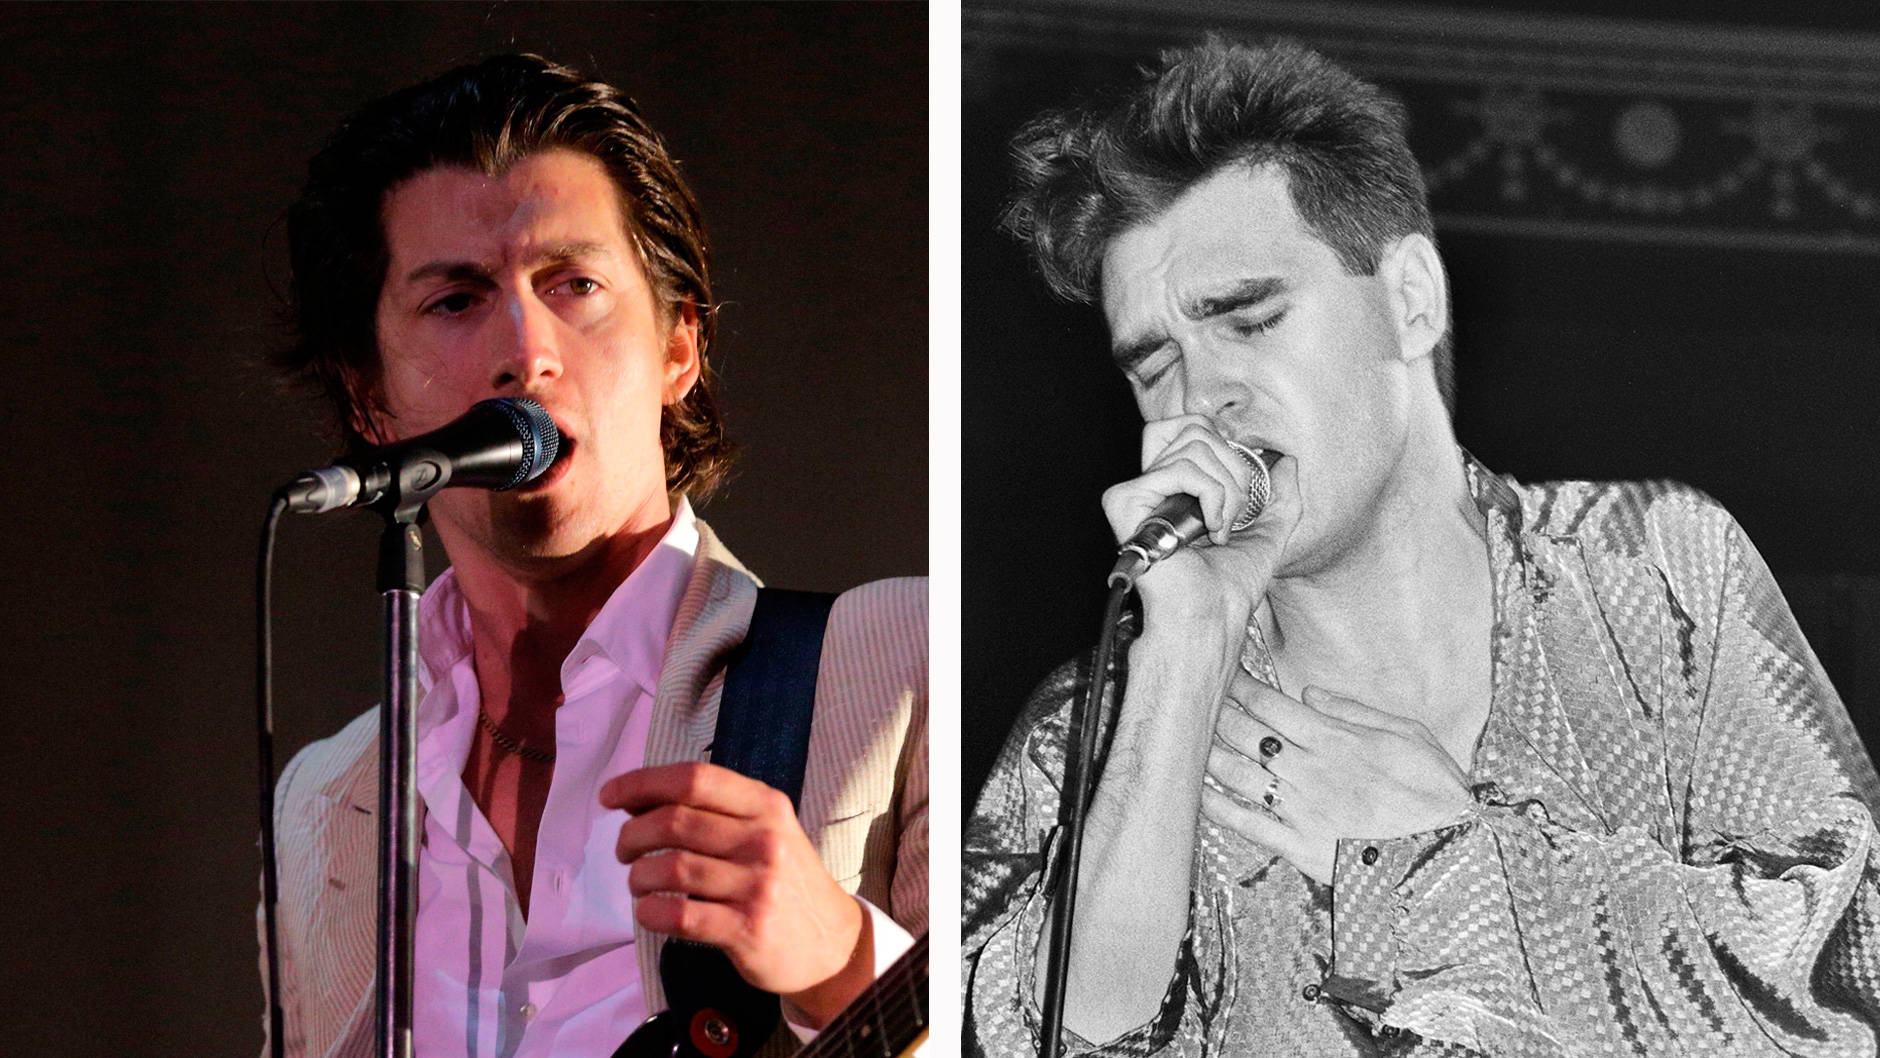 Alex Turner channels young Morrissey in photo with fan in